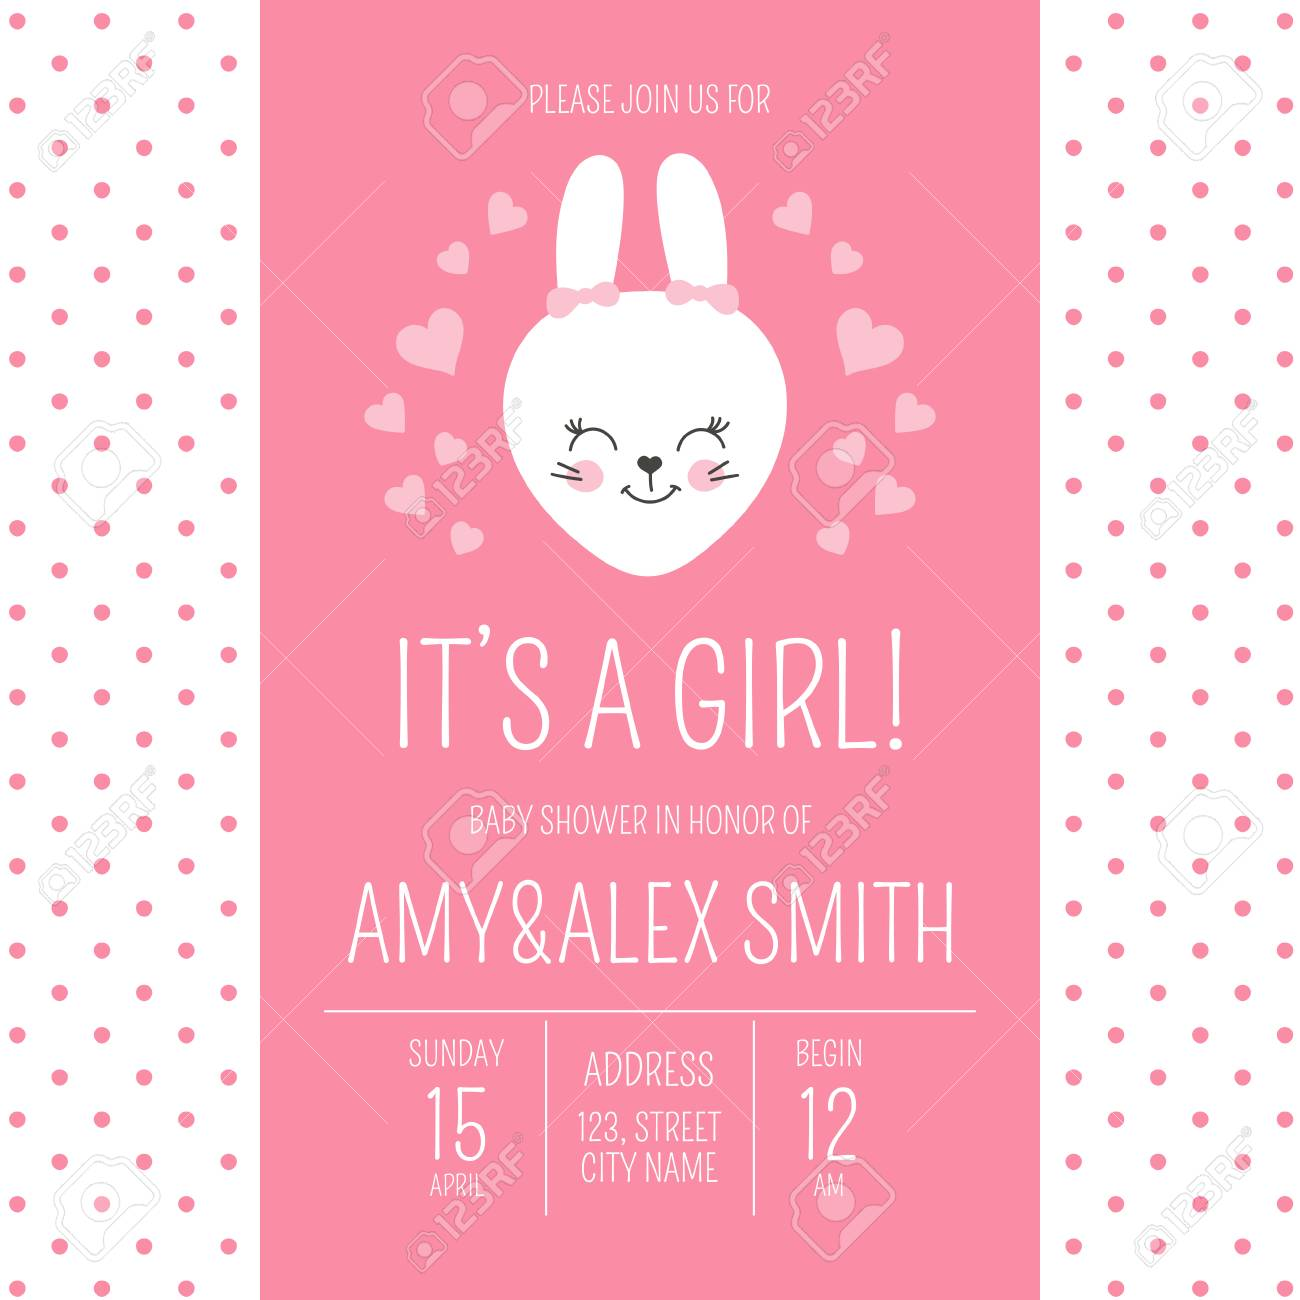 Cute Baby Shower Girl Invite Card Vector Template Cartoon Animal Itâ S A Girl Illustration Pink Design With Little Bunny And Hearts Kids Newborn